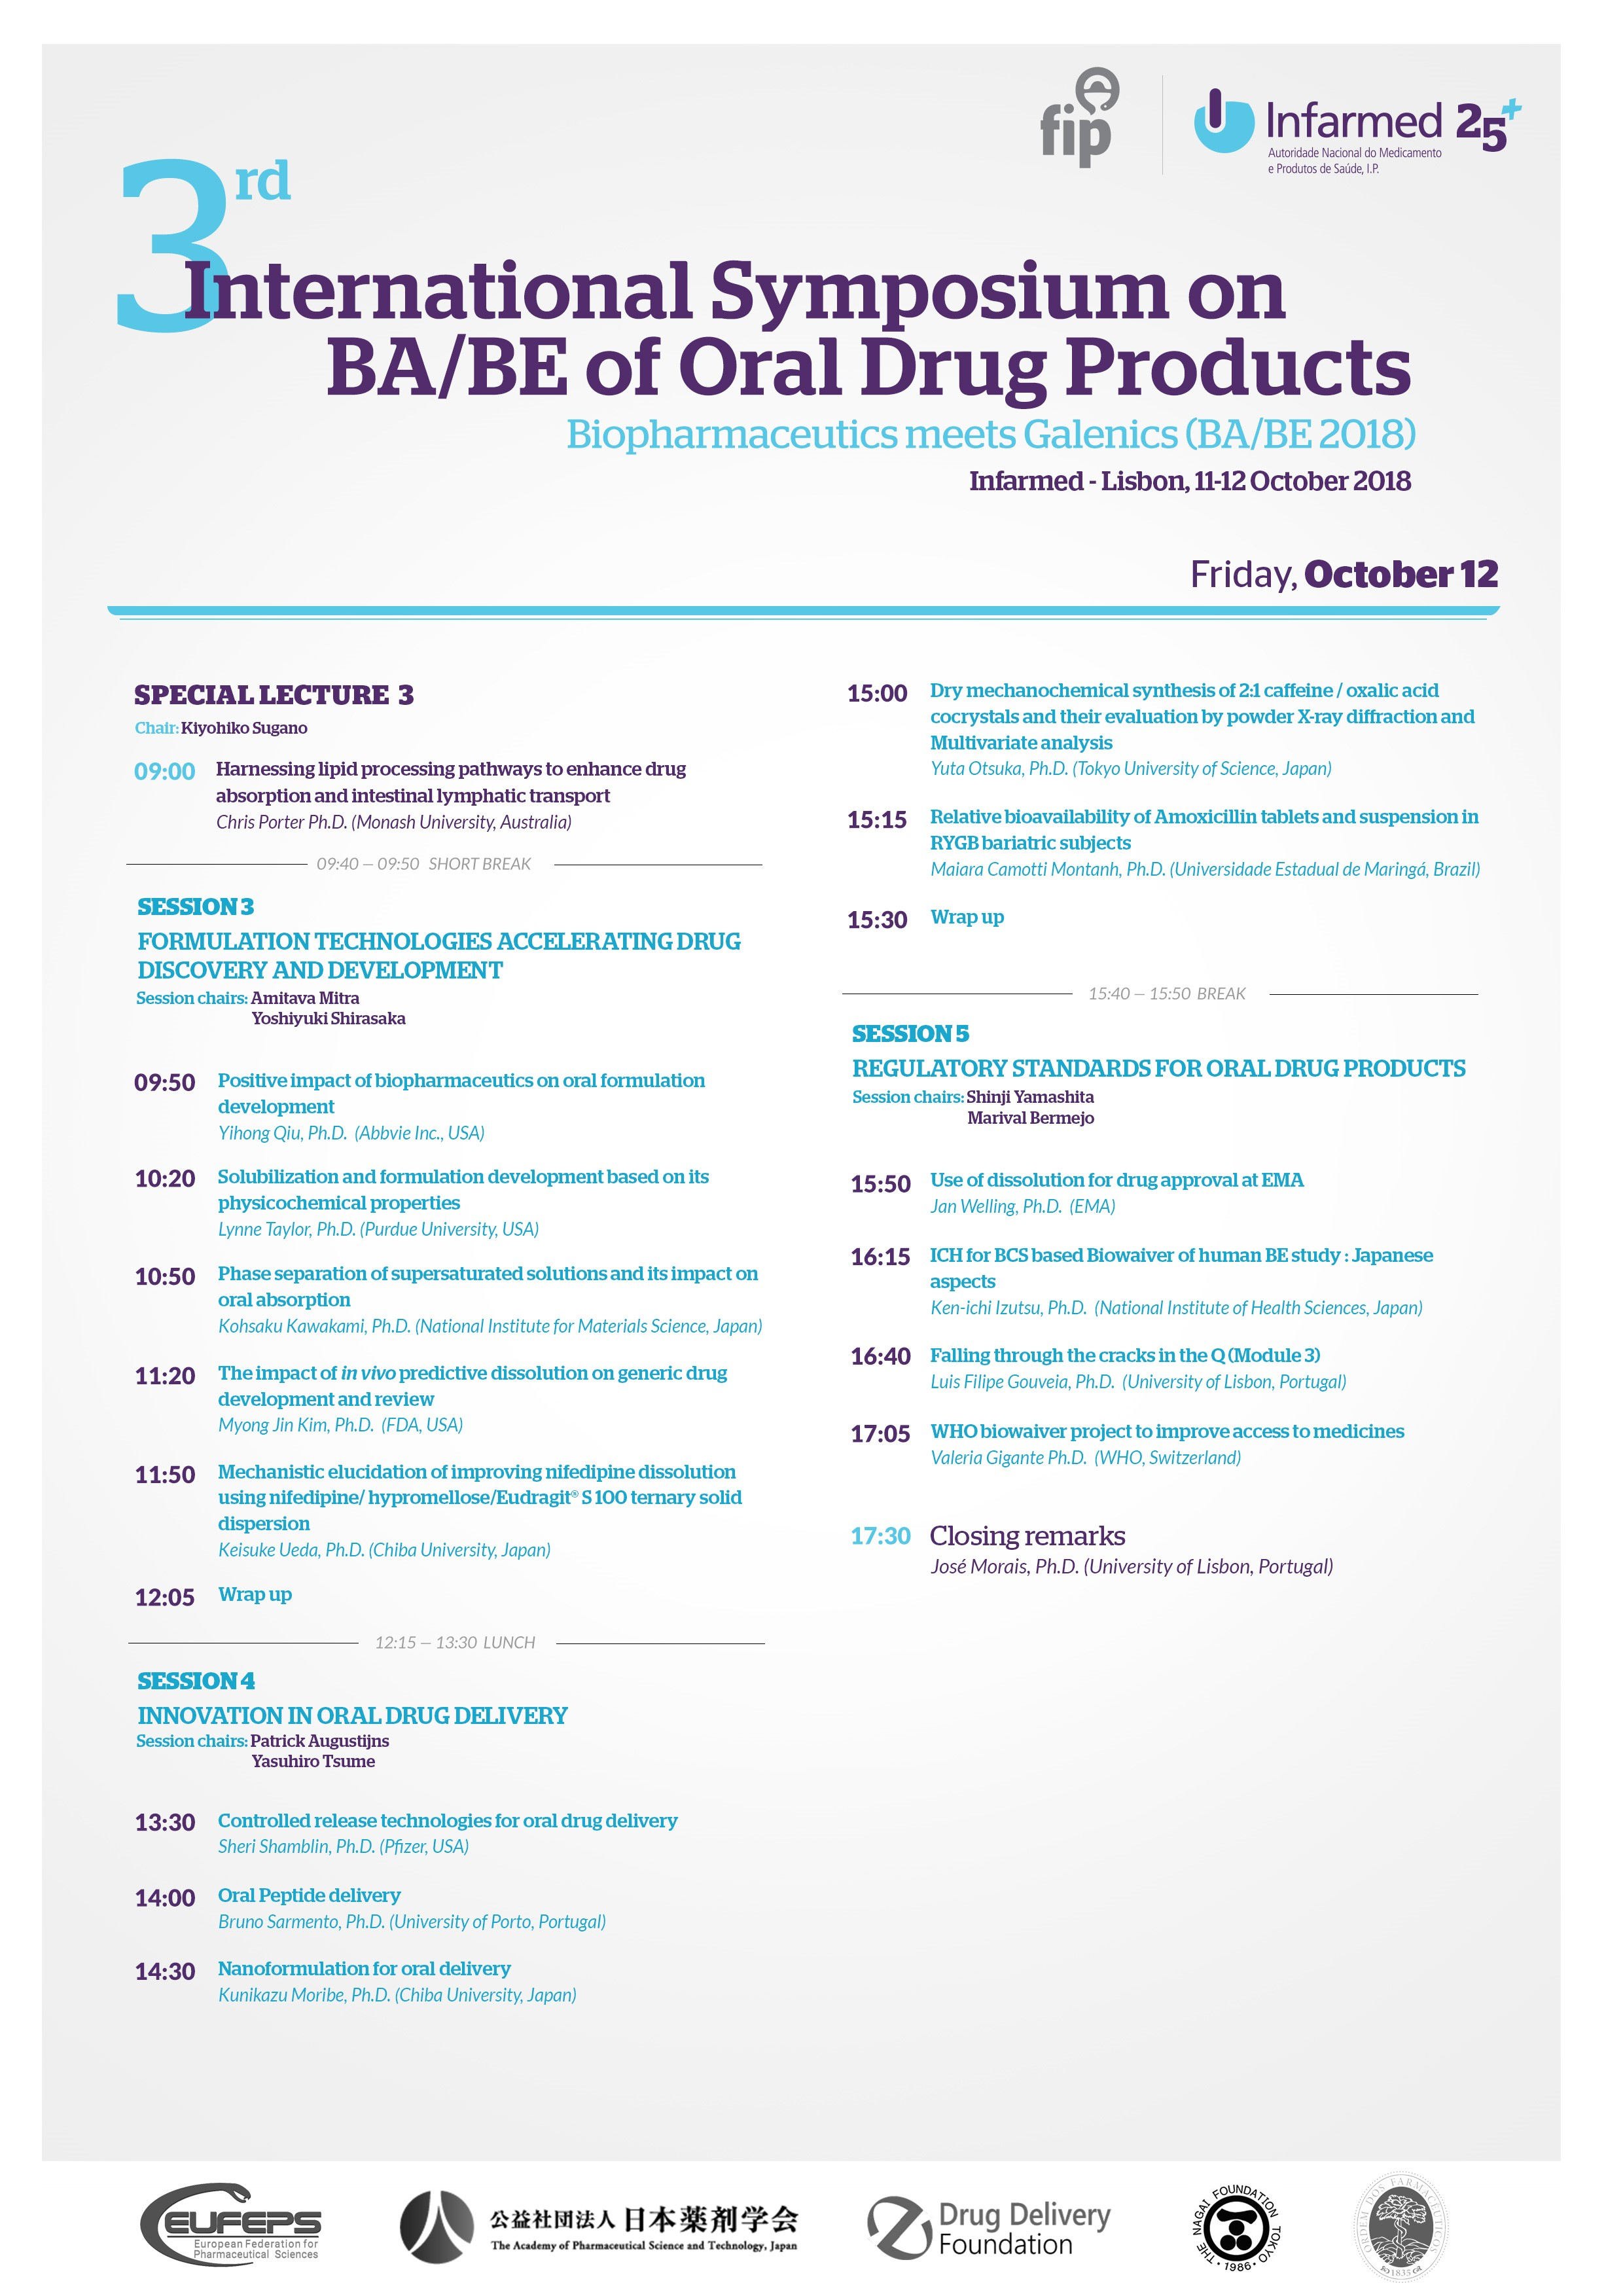 3rd International Symposium on BA/BE of Oral Drug Products